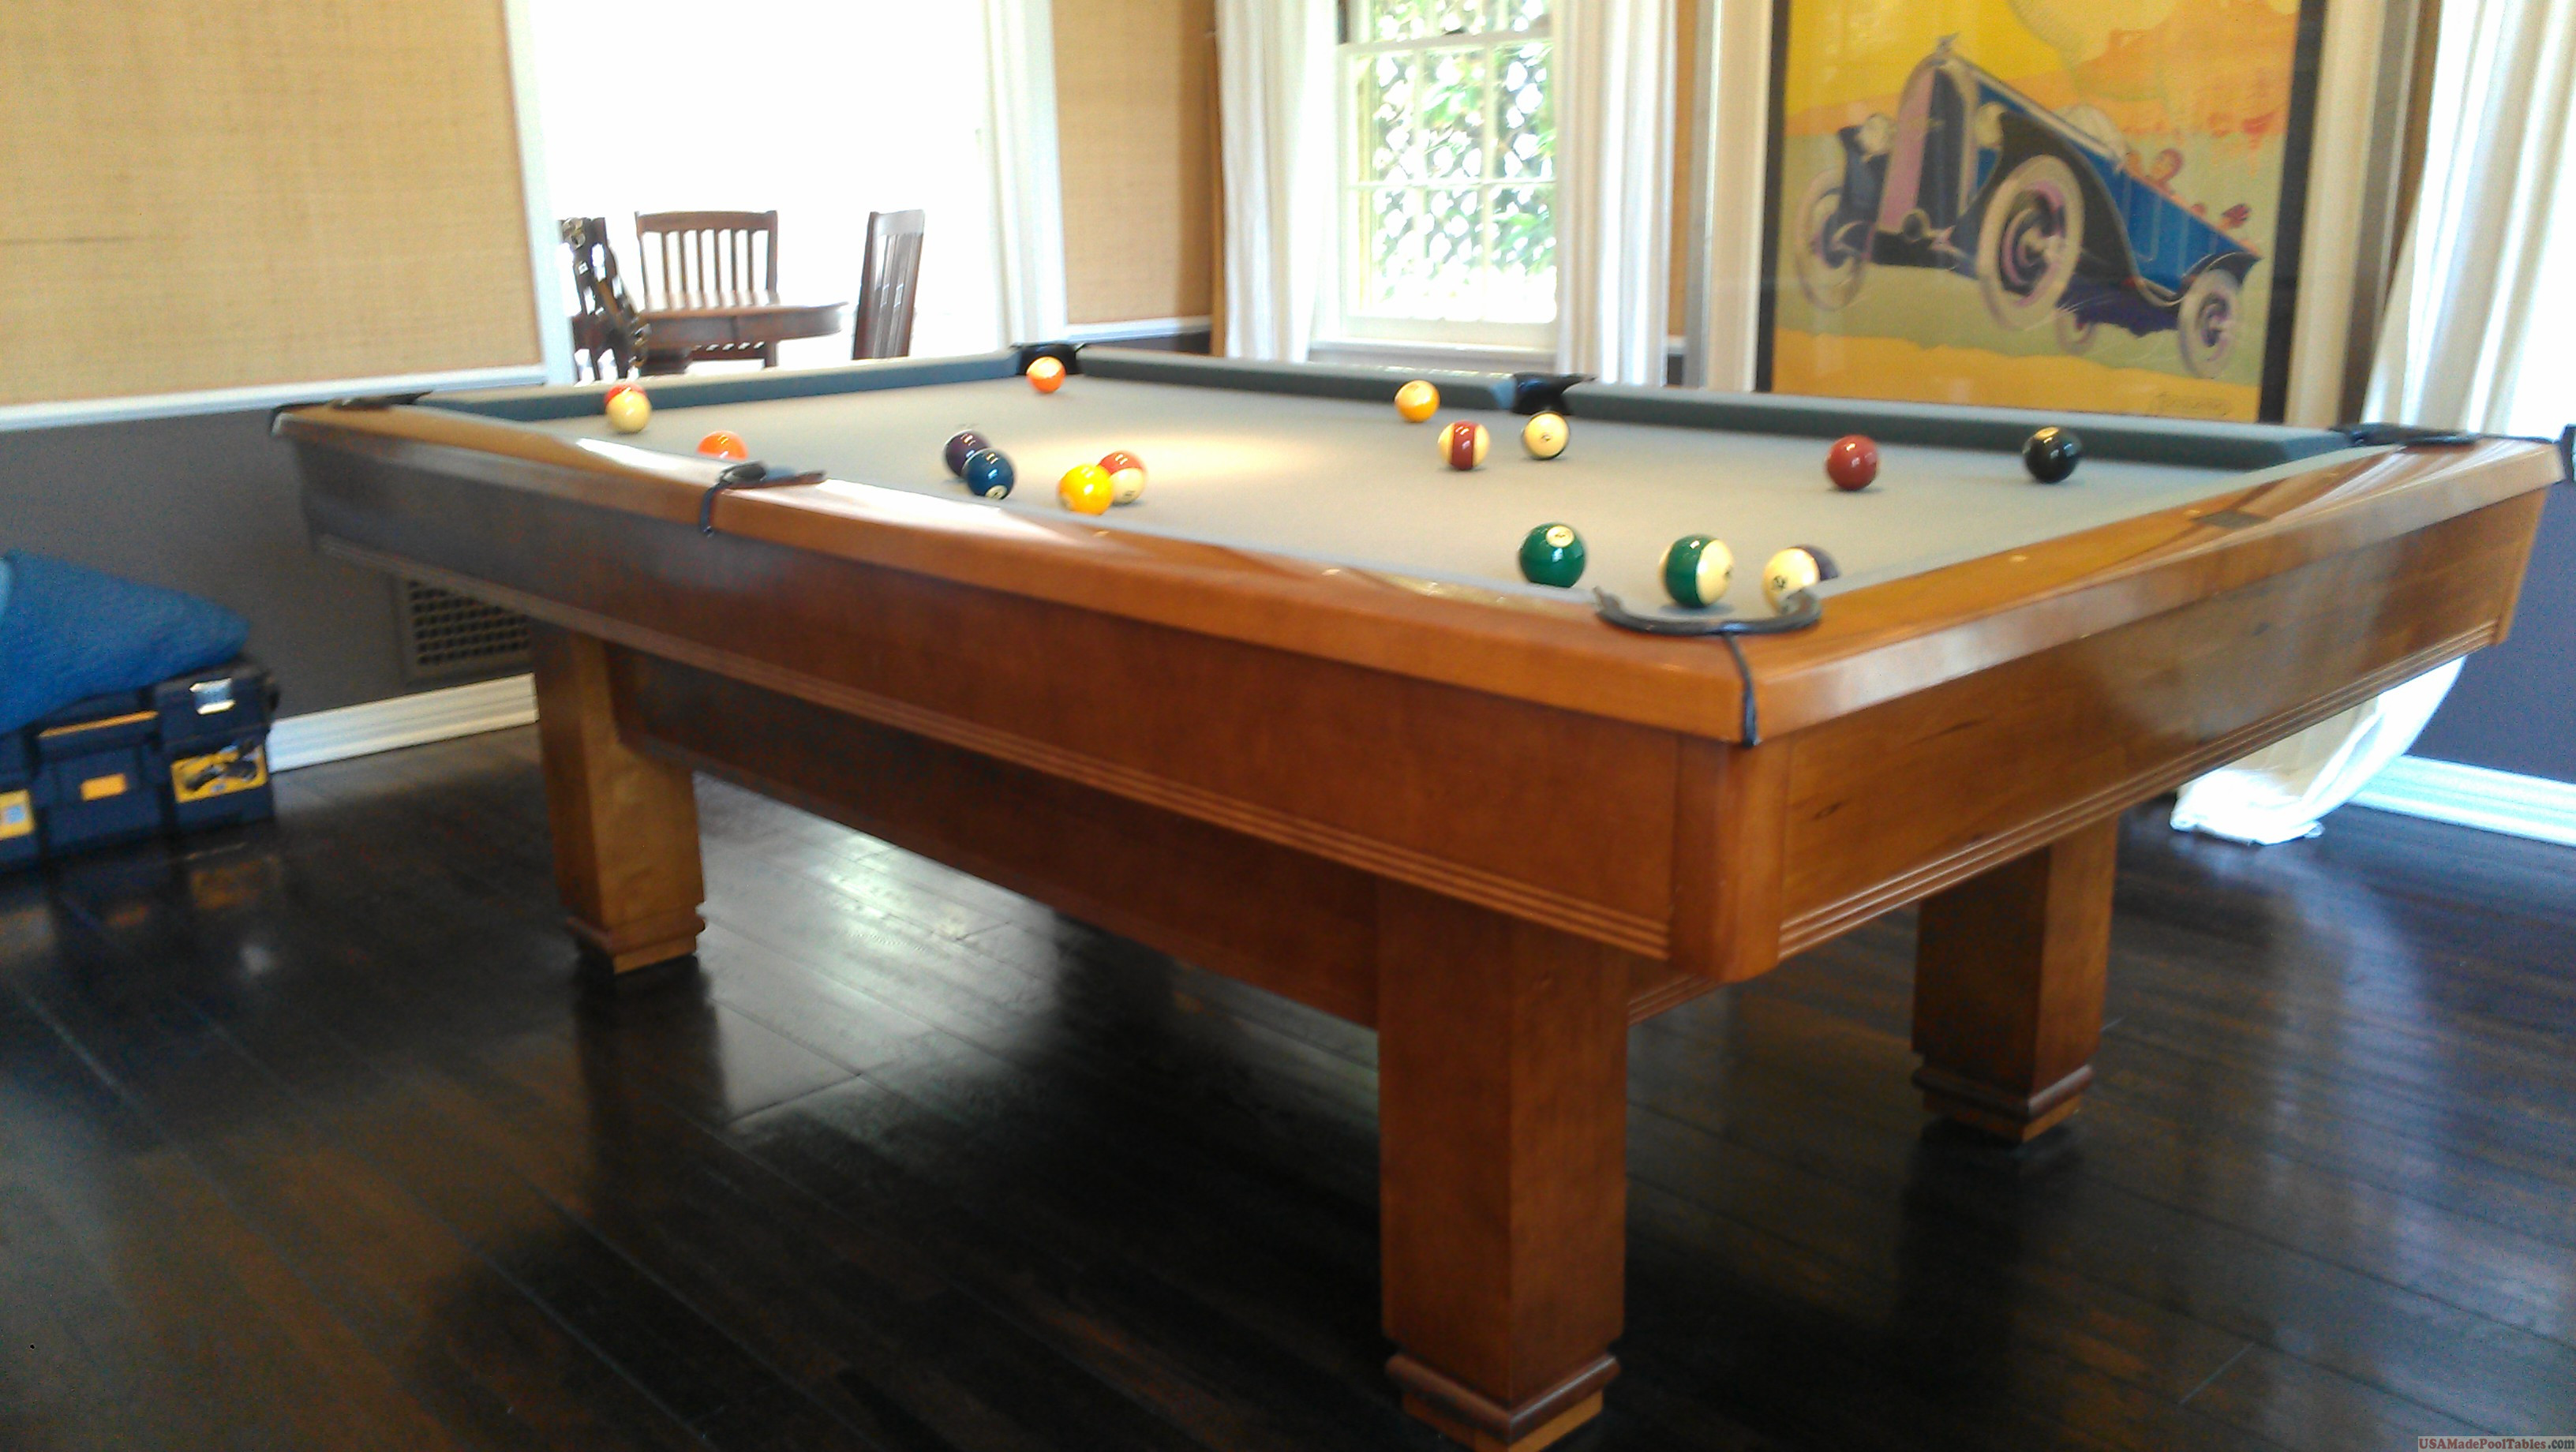 USED POOL TABLES LOS ANGELES BRUNSWICK POOL TABLES VENTURA - Pool table movers inland empire